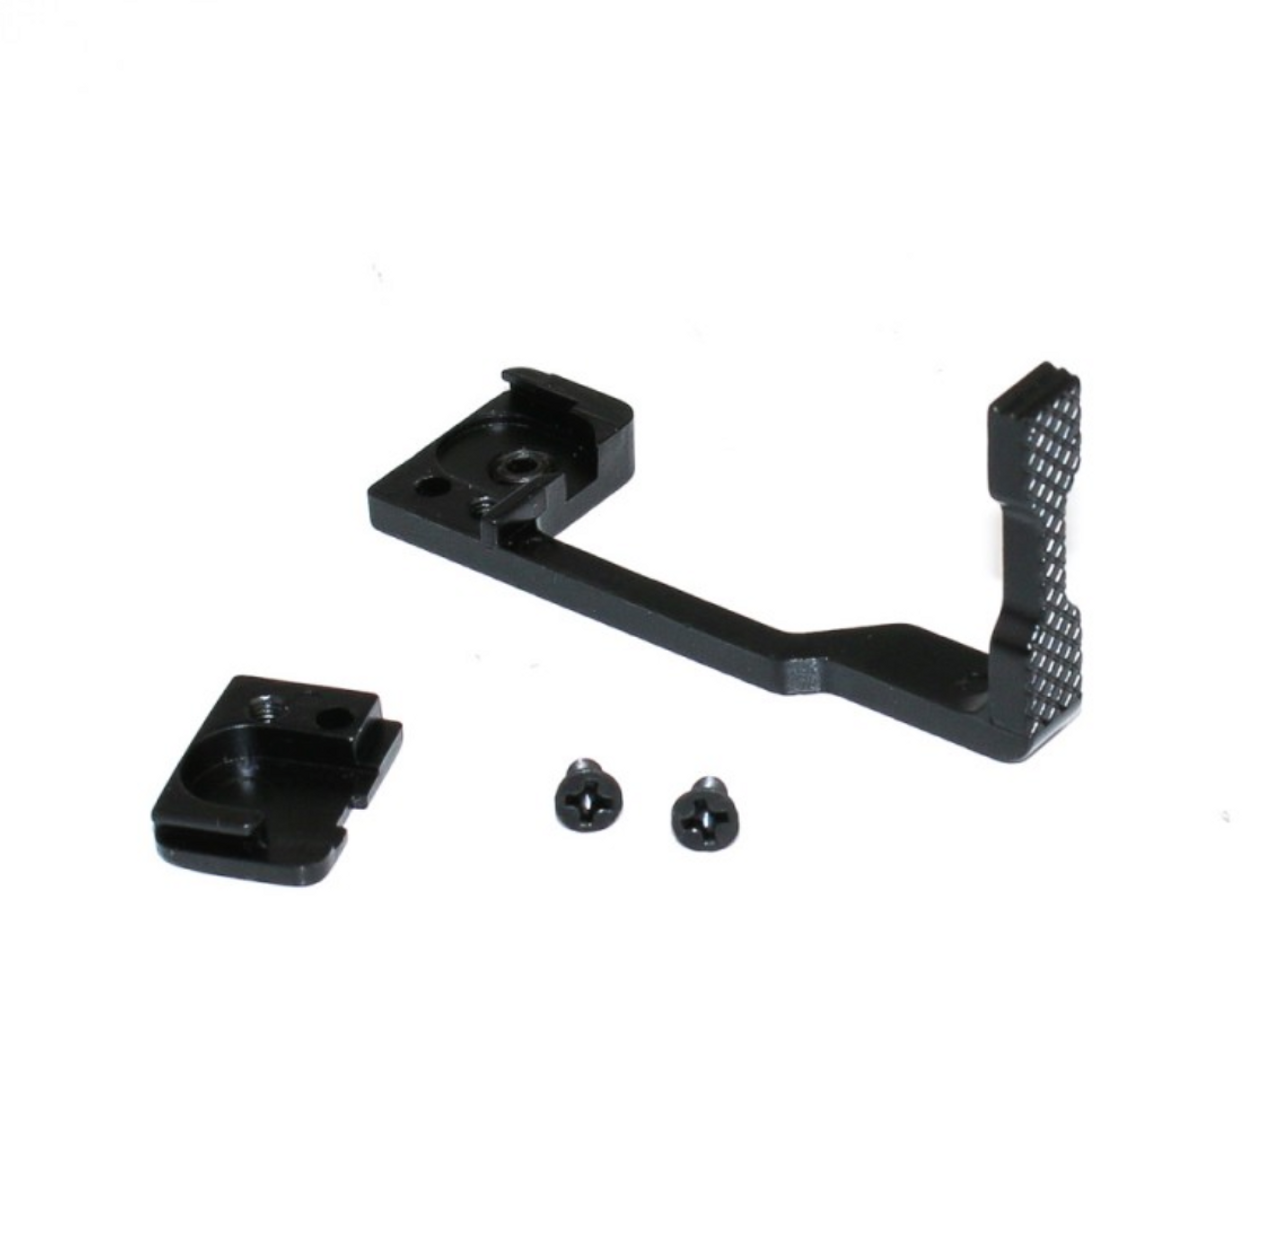 AR-15 Extended Bolt Catch Release Lever